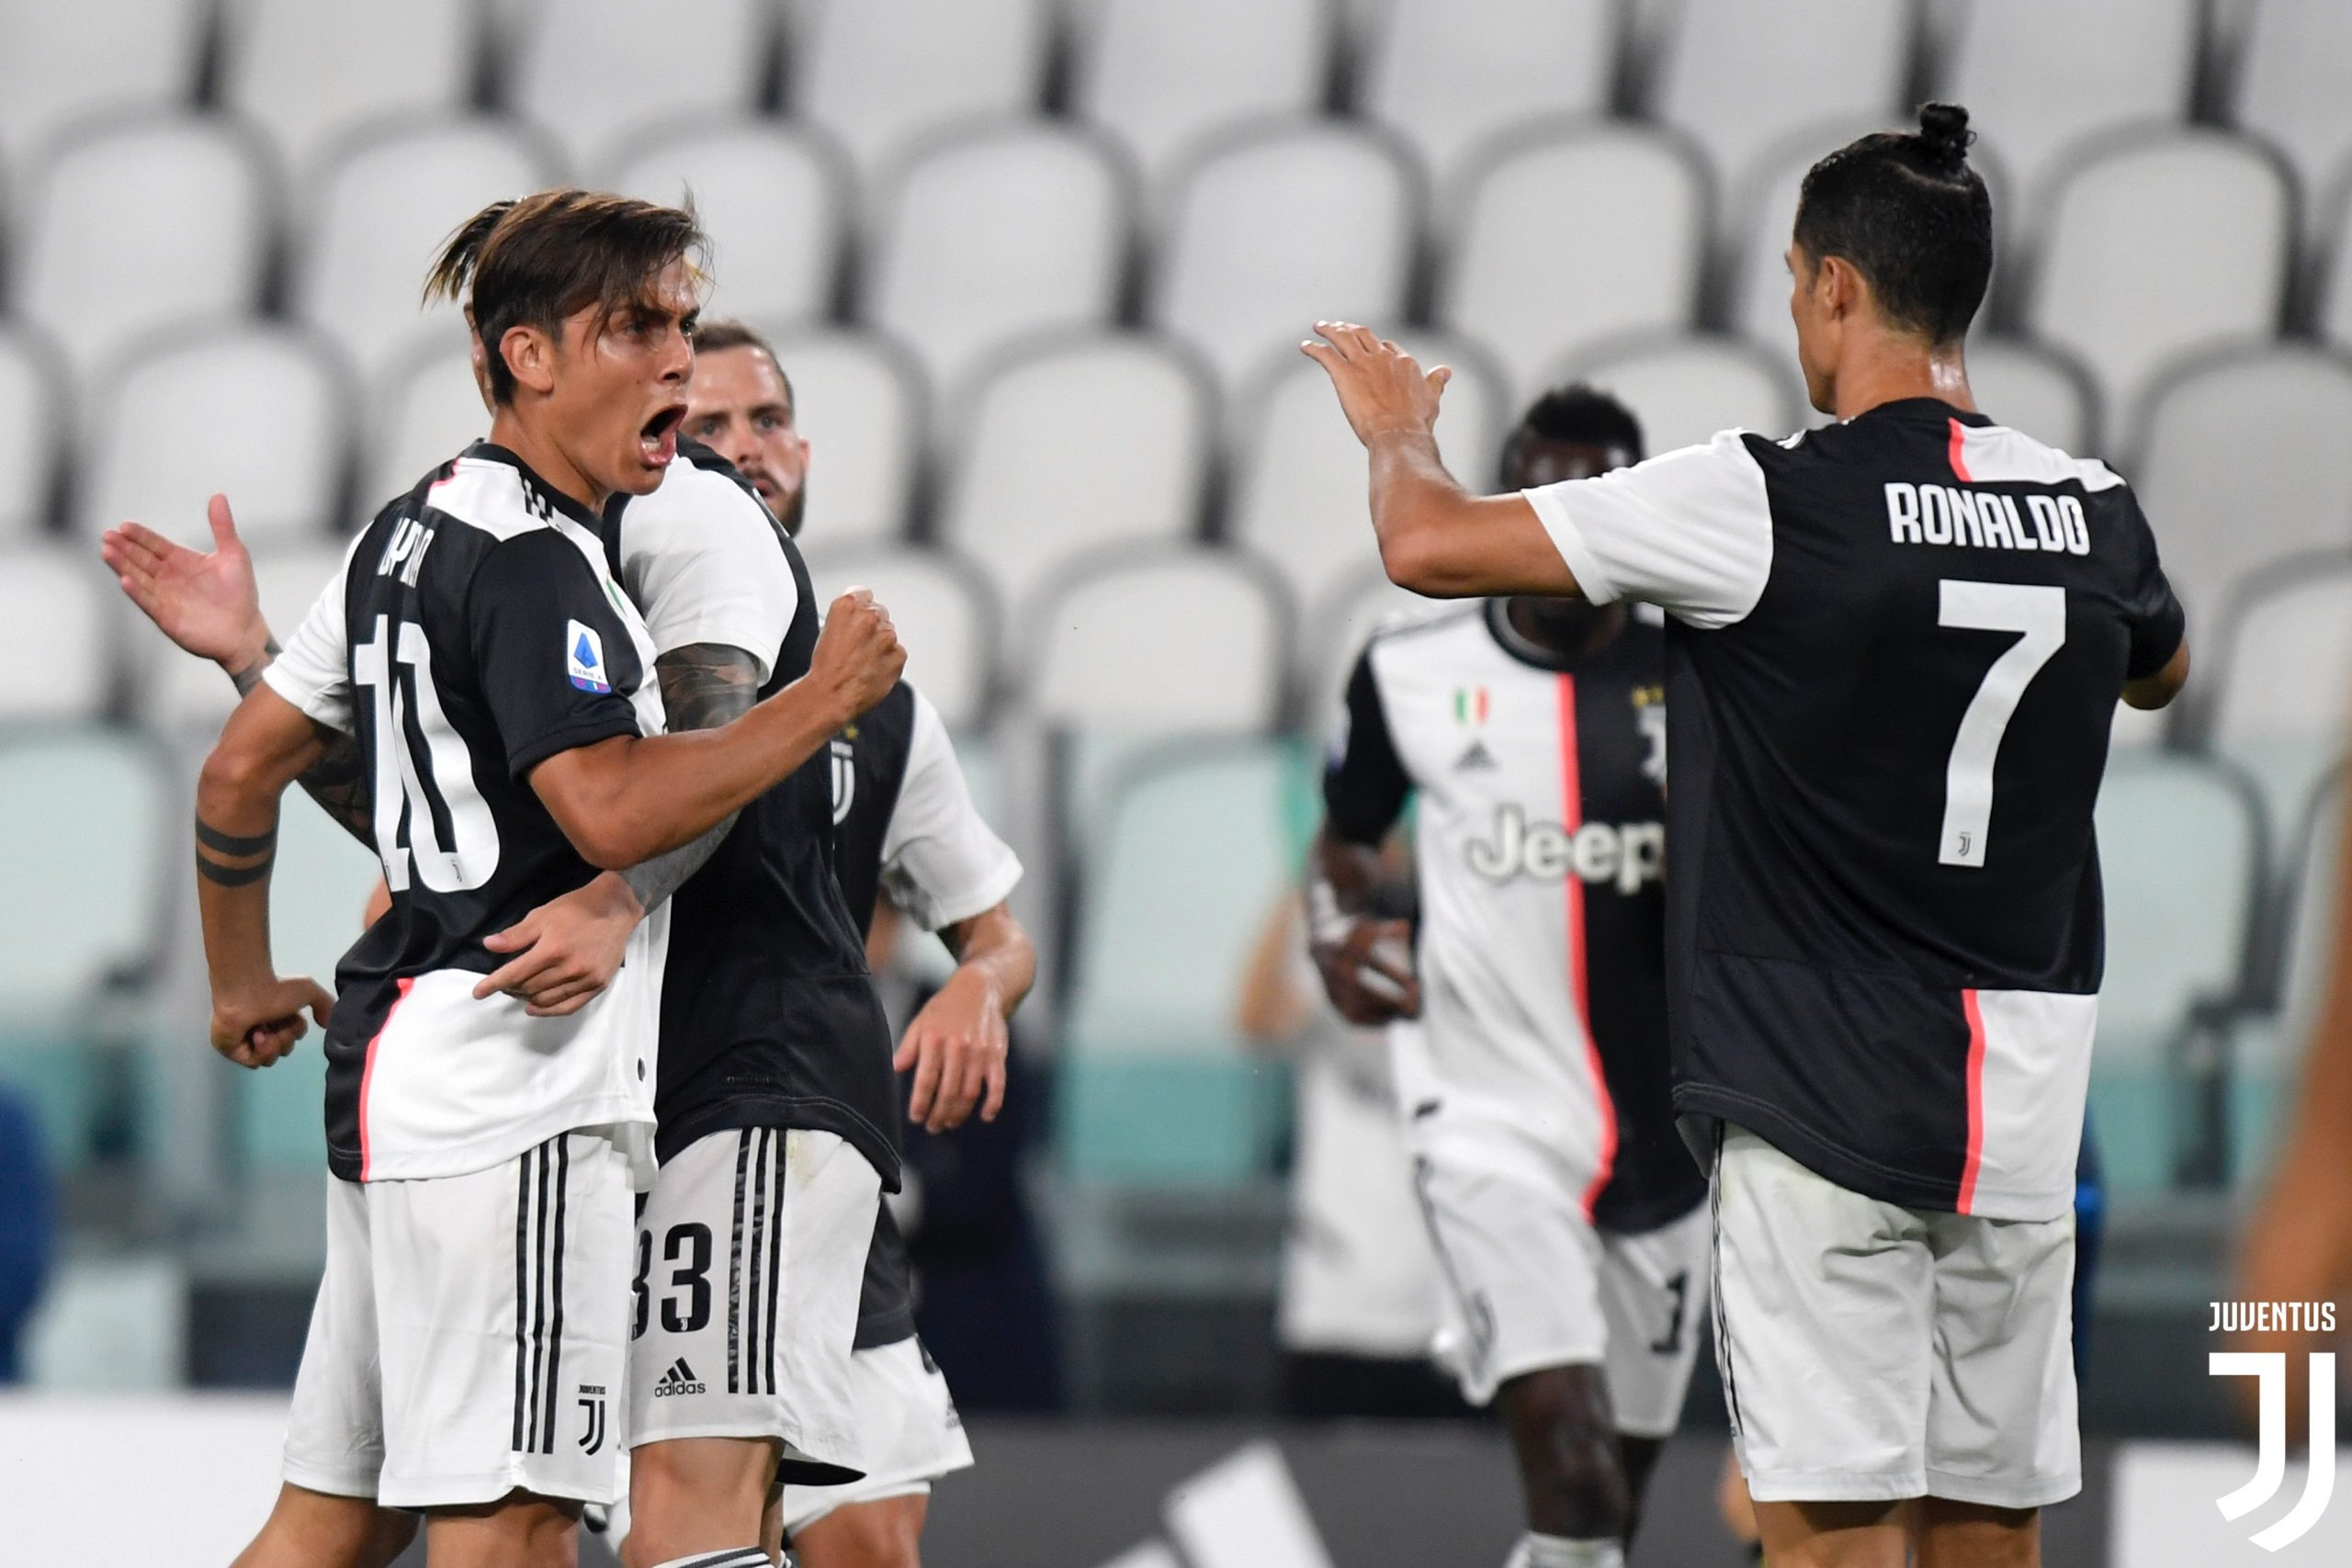 Serie A: Juventus Thrash Lecce To Extend Lead At The Top